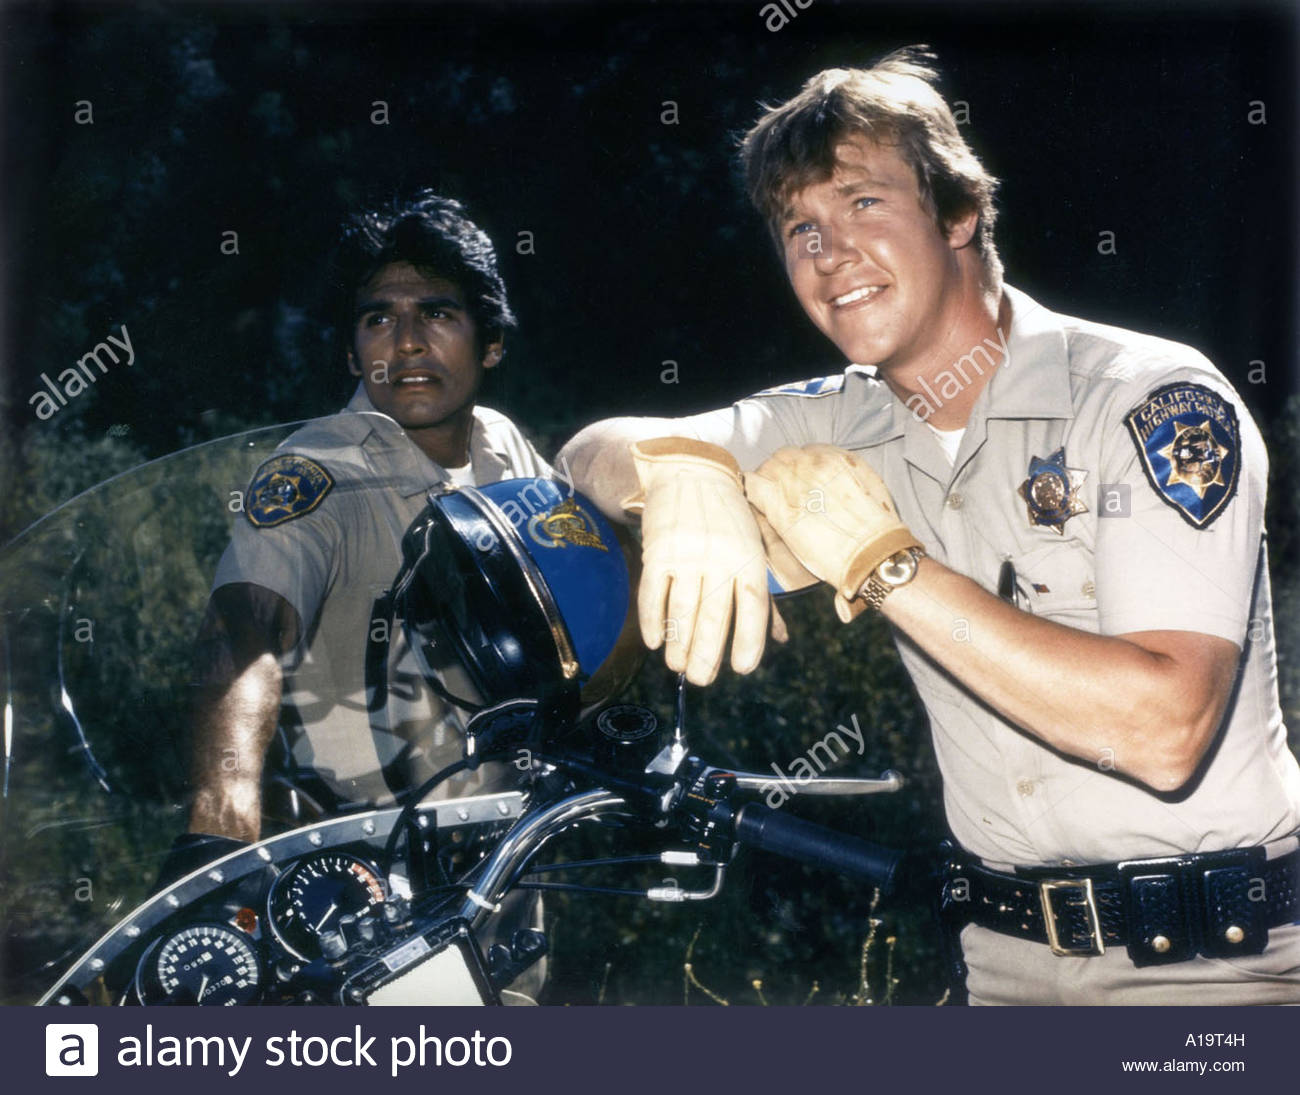 chips tv series 1977 1983 erik estrada larry wilcox A19T4Hjpg 1300x1095